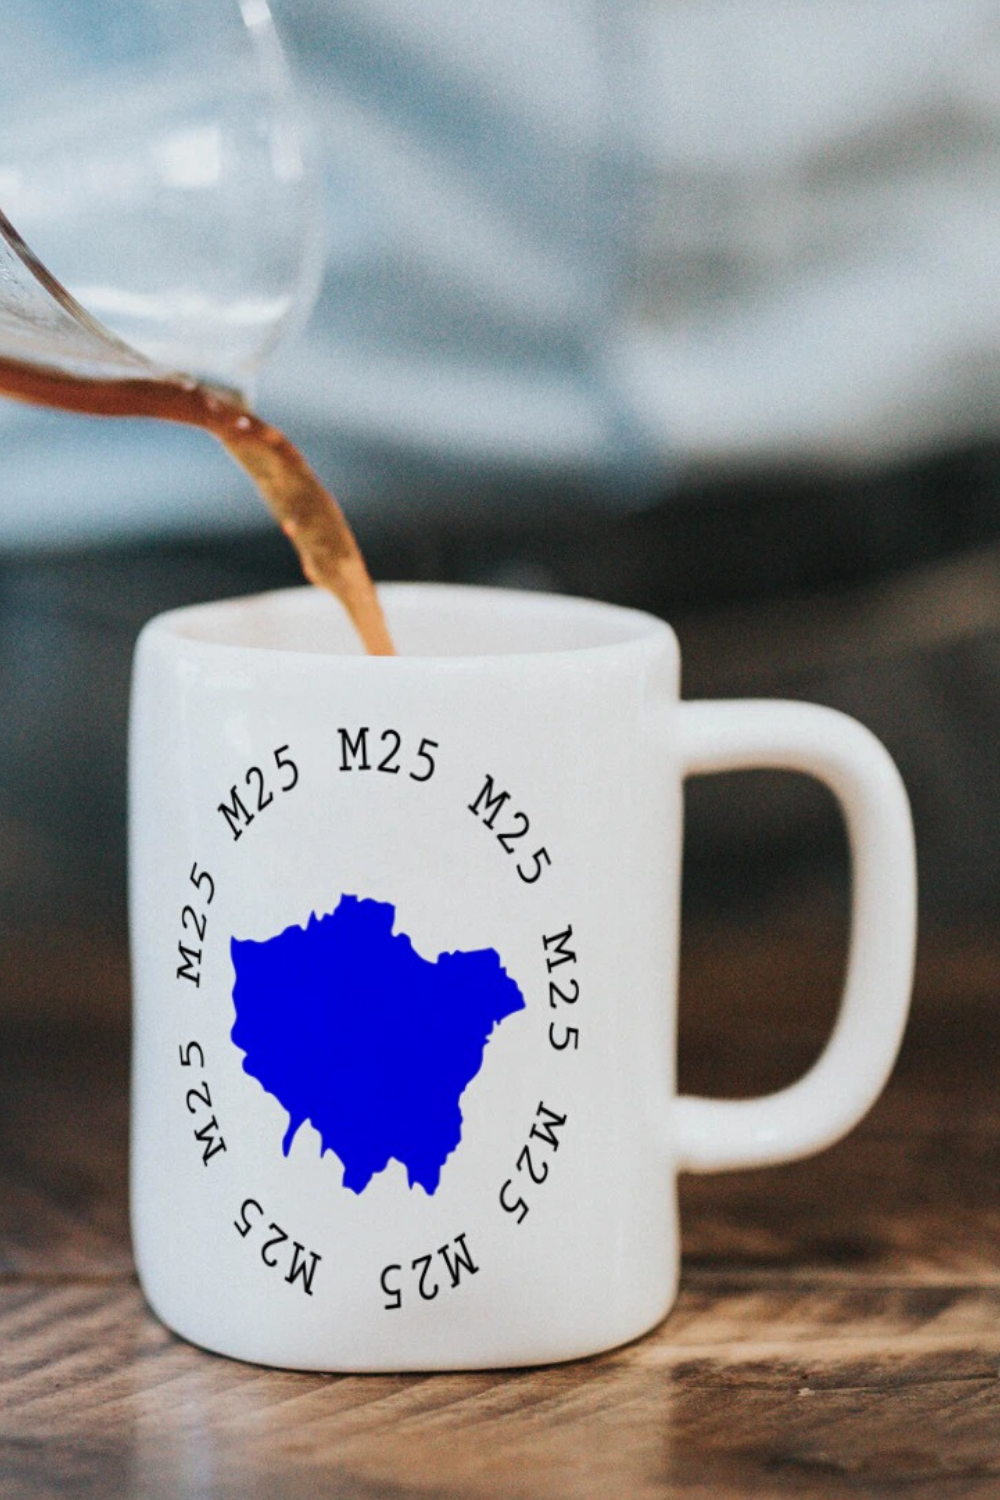 Ceramic coffee mugs with London city map in blue in 2020